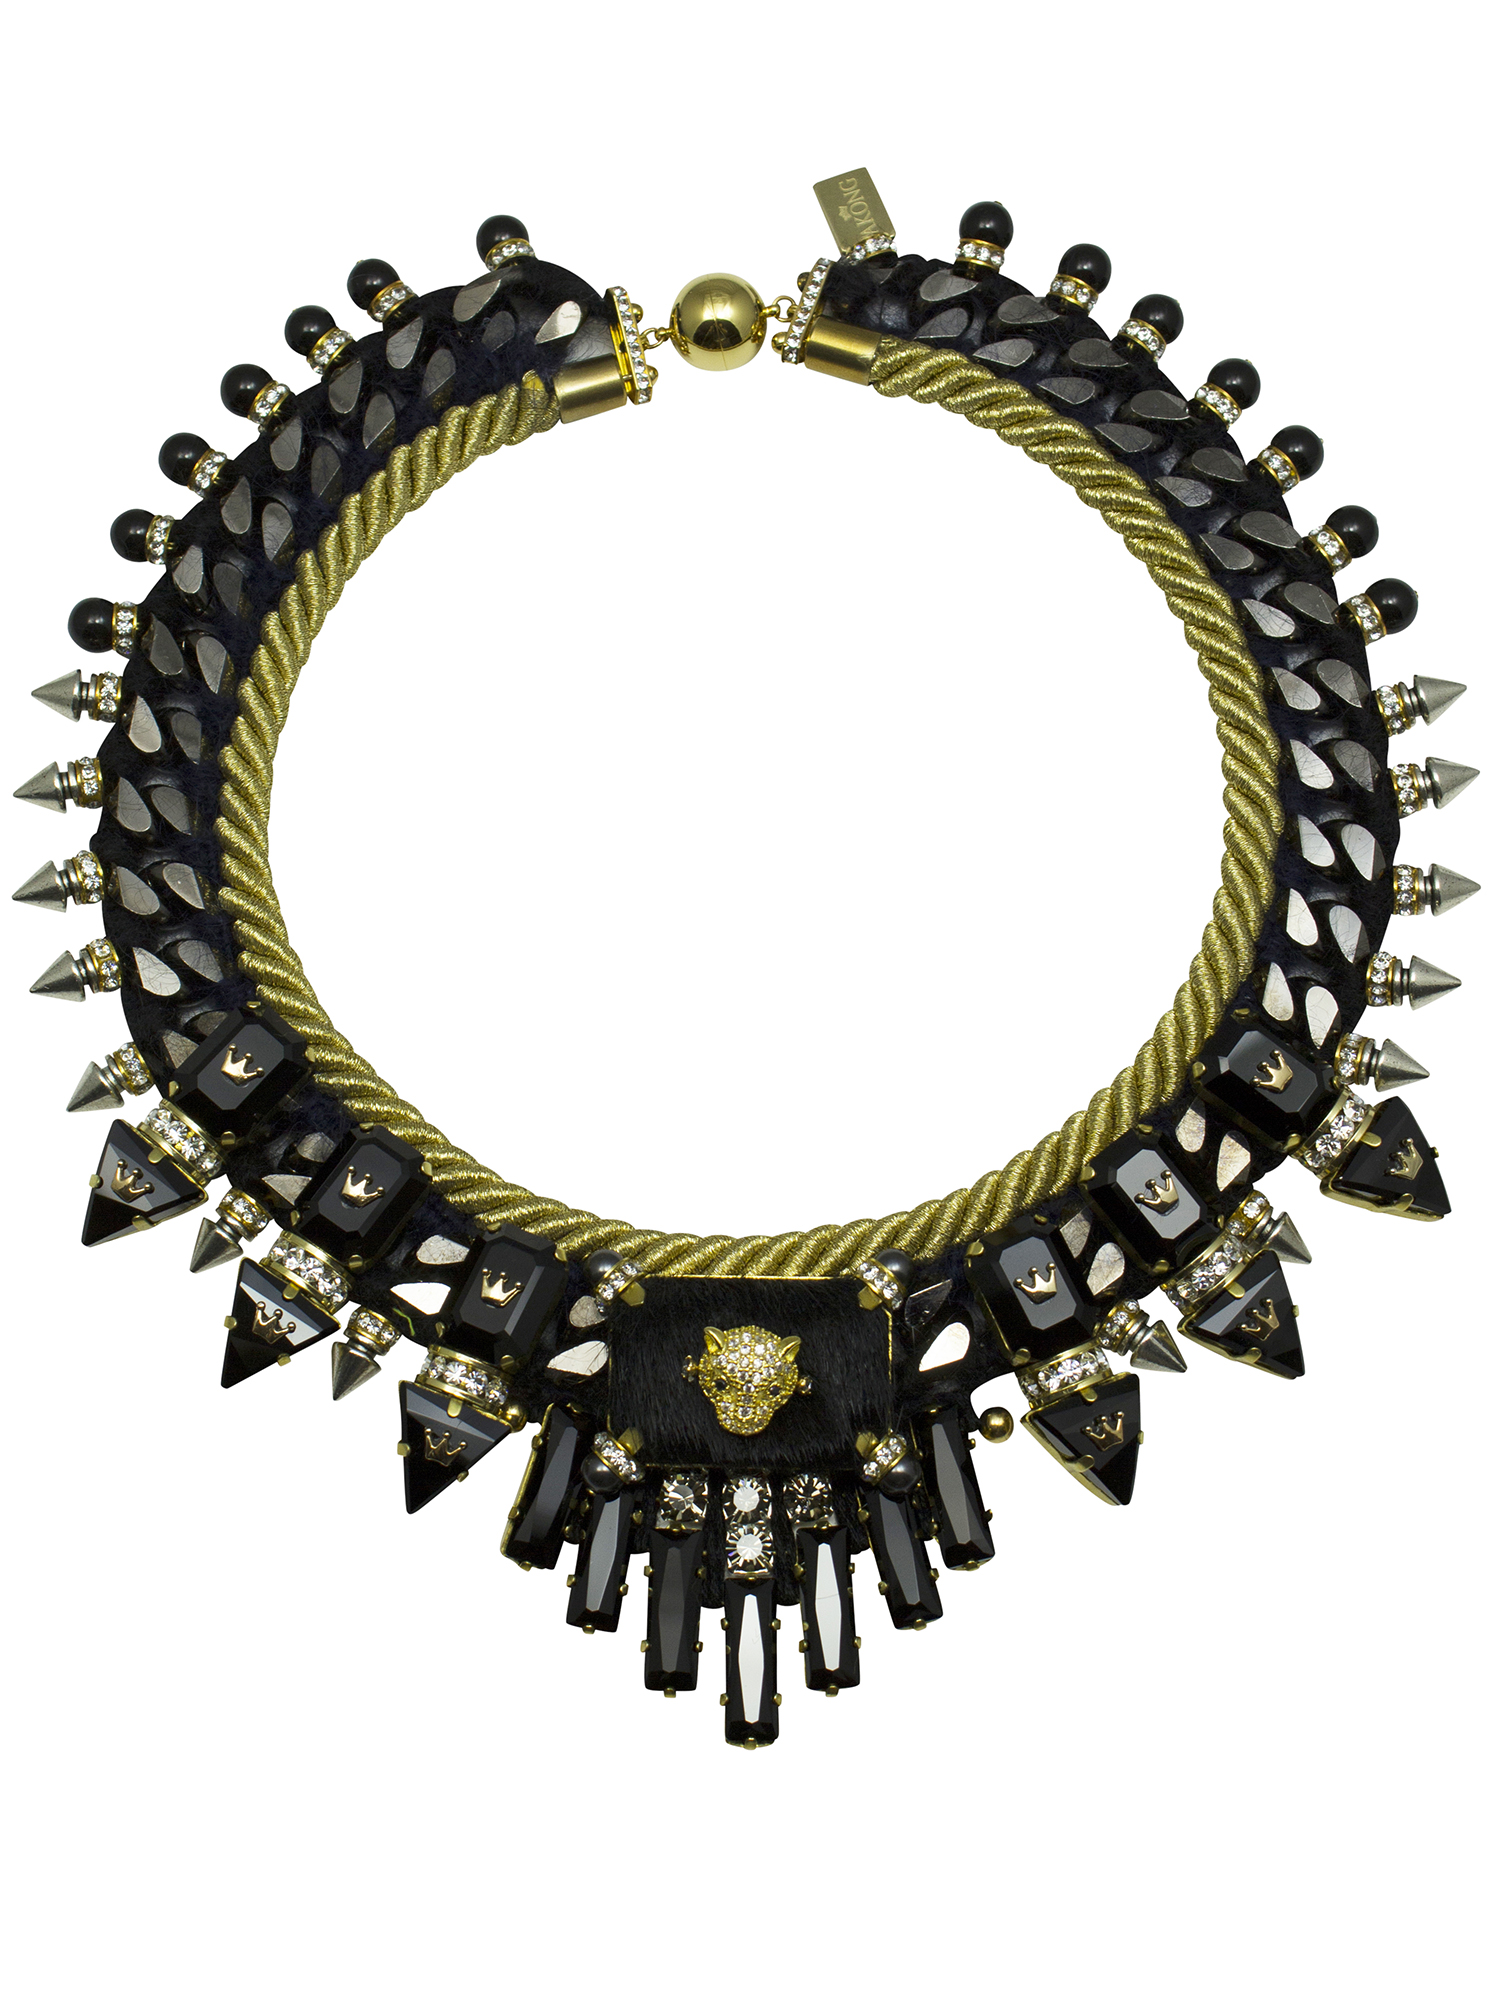 208N Black & Gold Cord Military Necklace.jpg